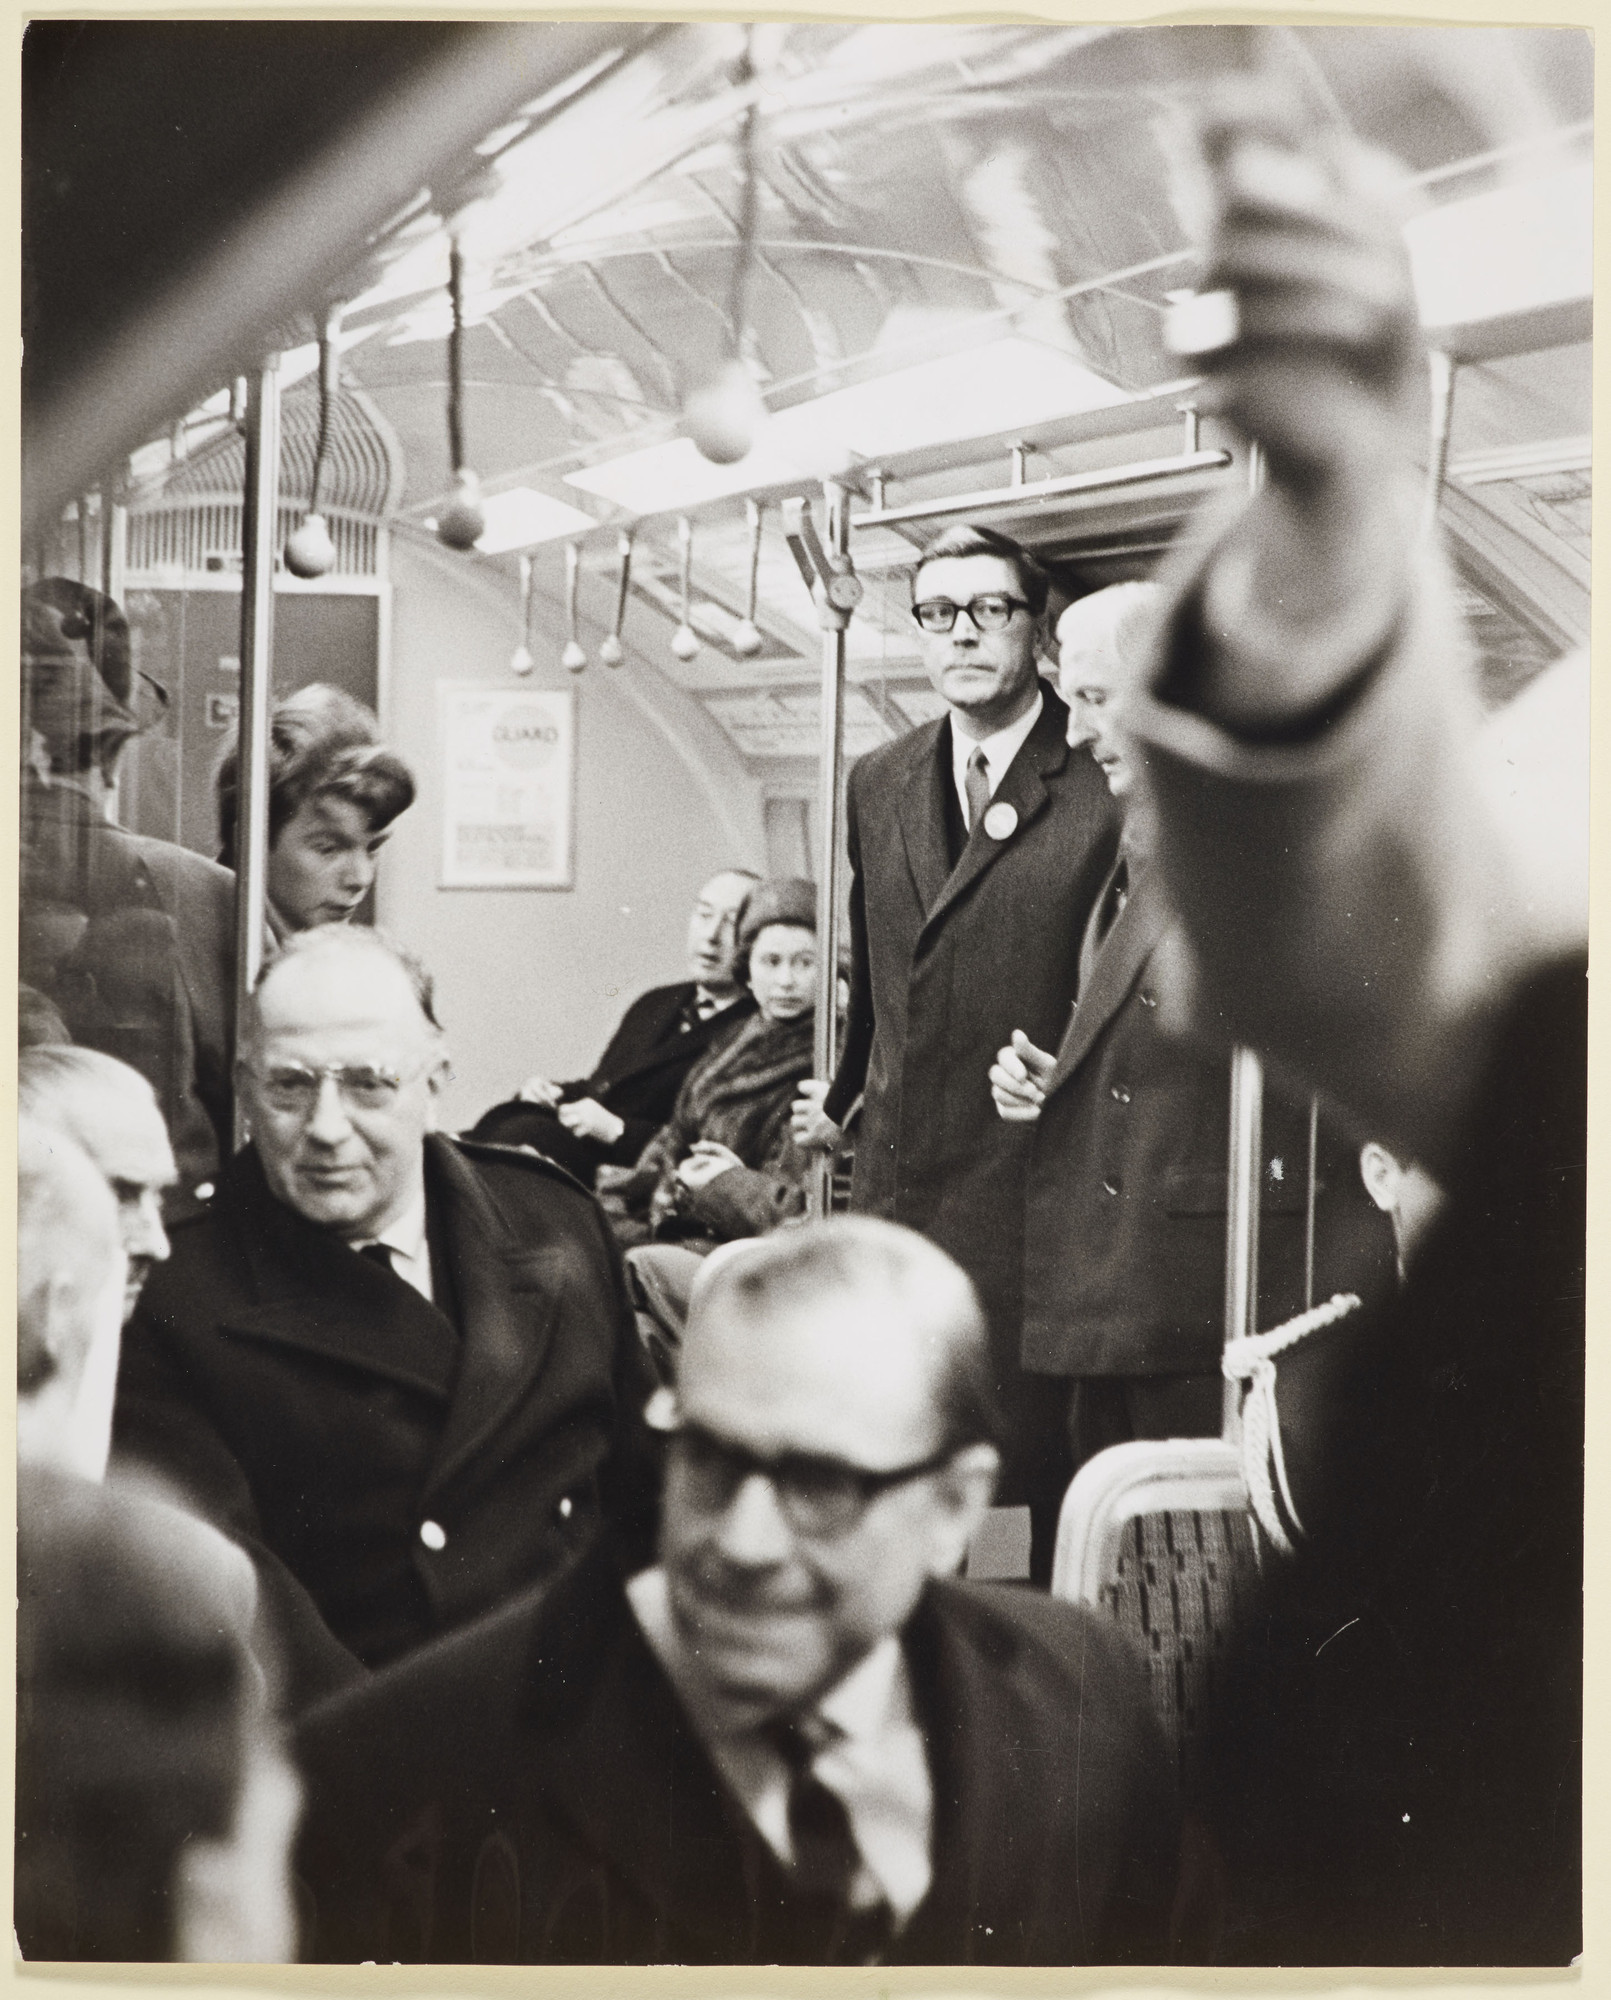 614553 1466677596 - Victoria Line Royal Opening 1969